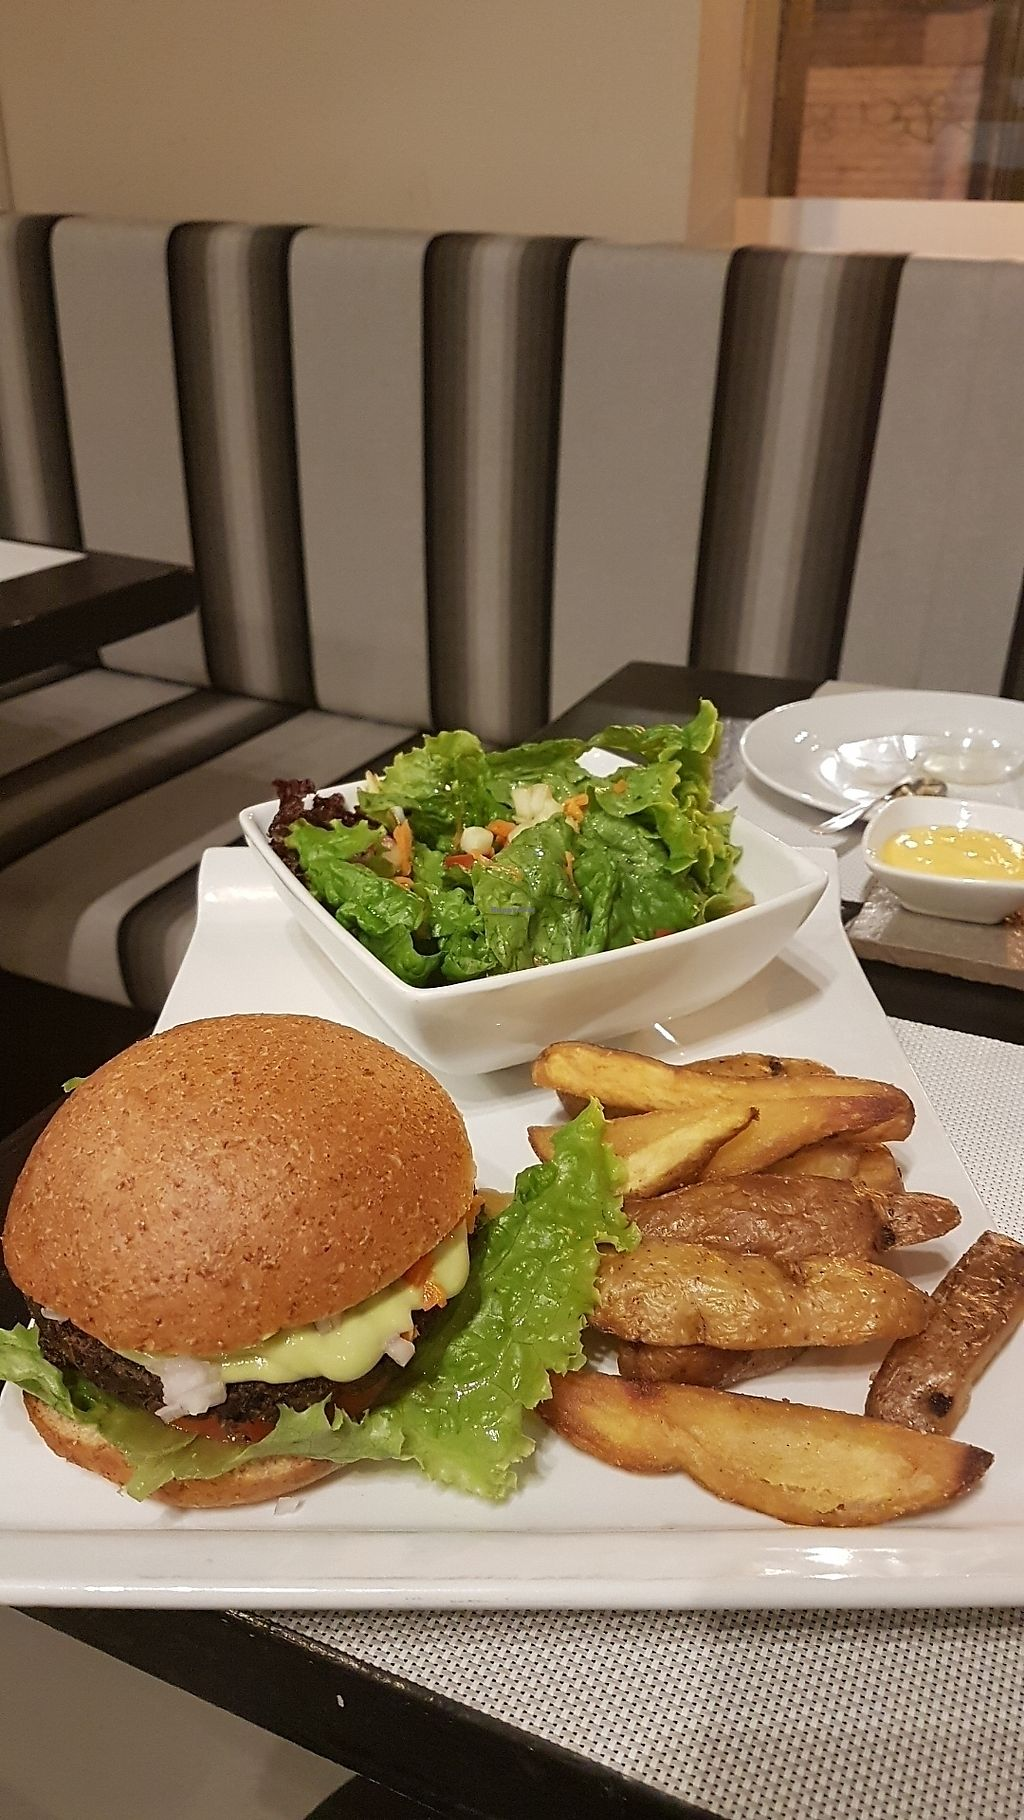 """Photo of Seitan Urban Bistro  by <a href=""""/members/profile/unabashed"""">unabashed</a> <br/>bean burger & fries ?????? <br/> August 29, 2017  - <a href='/contact/abuse/image/70536/298715'>Report</a>"""